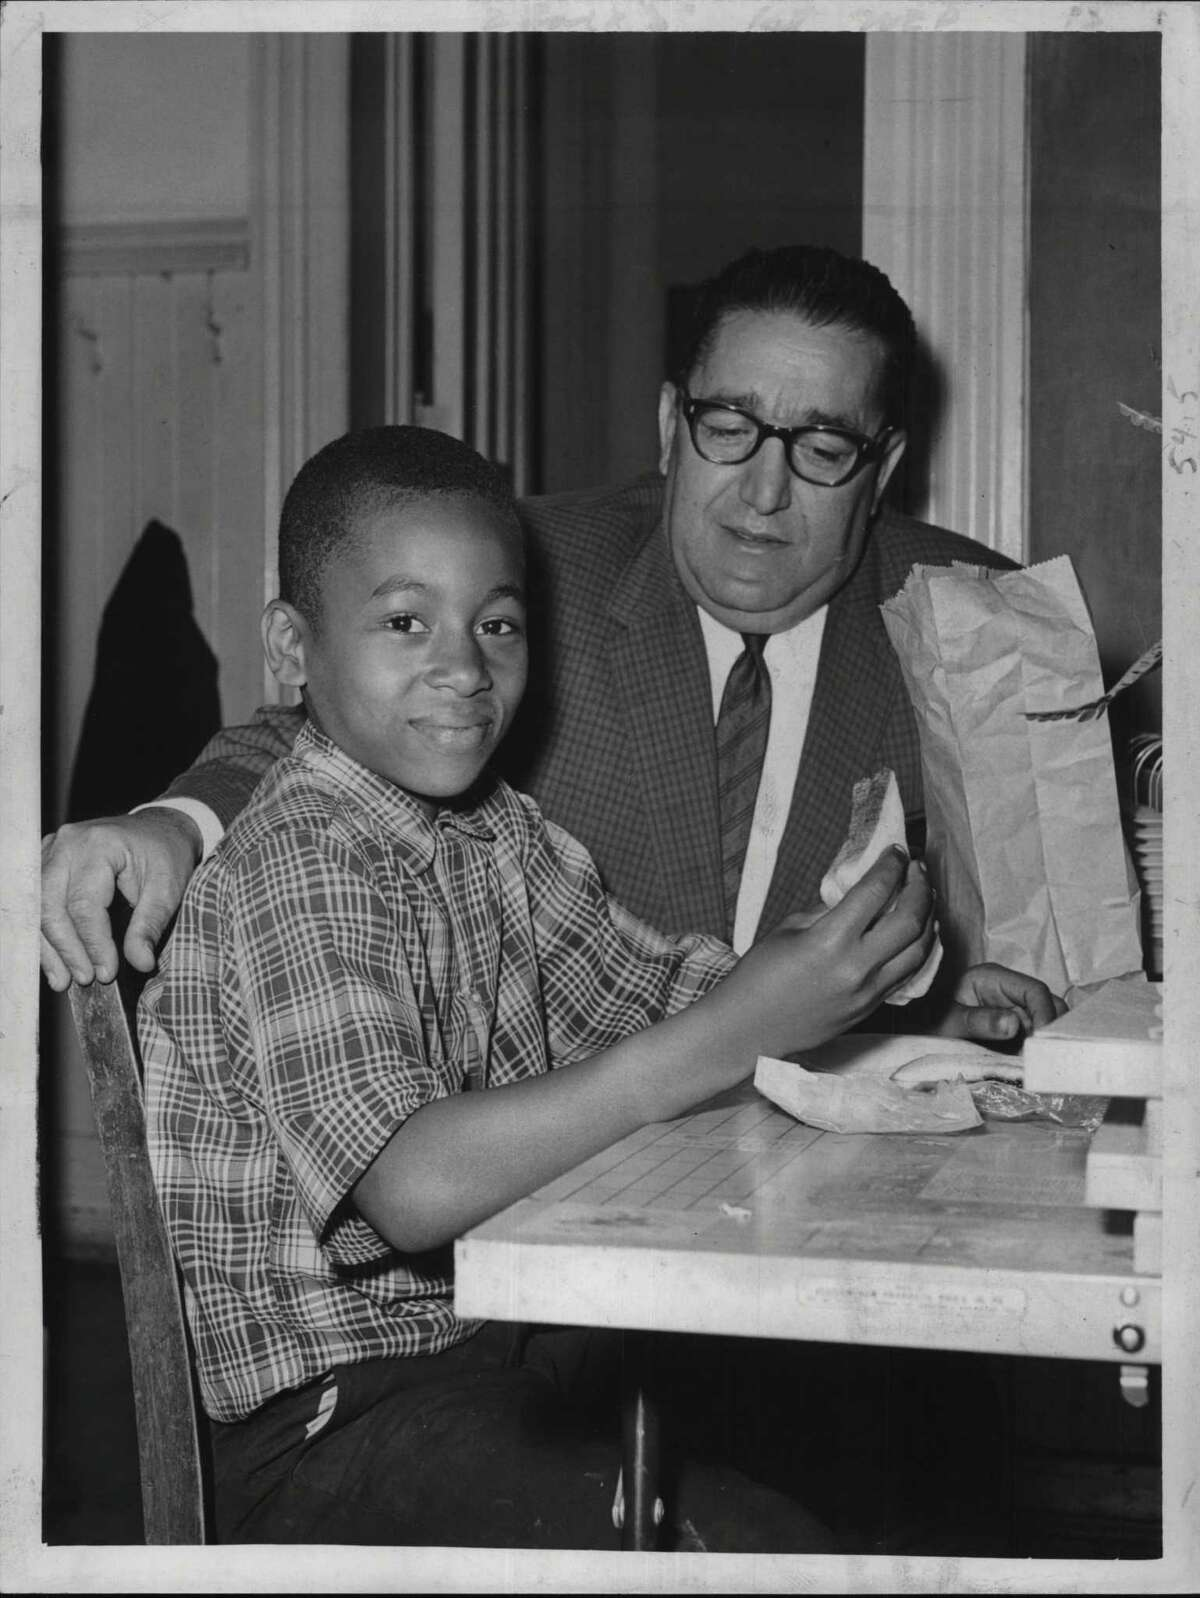 School 7 Principal Sam DiBlasi with Paul Willis, Albany, New York - hot lunches at public schools. January 06, 1965 (Jack Madigan/Times Union Archive)